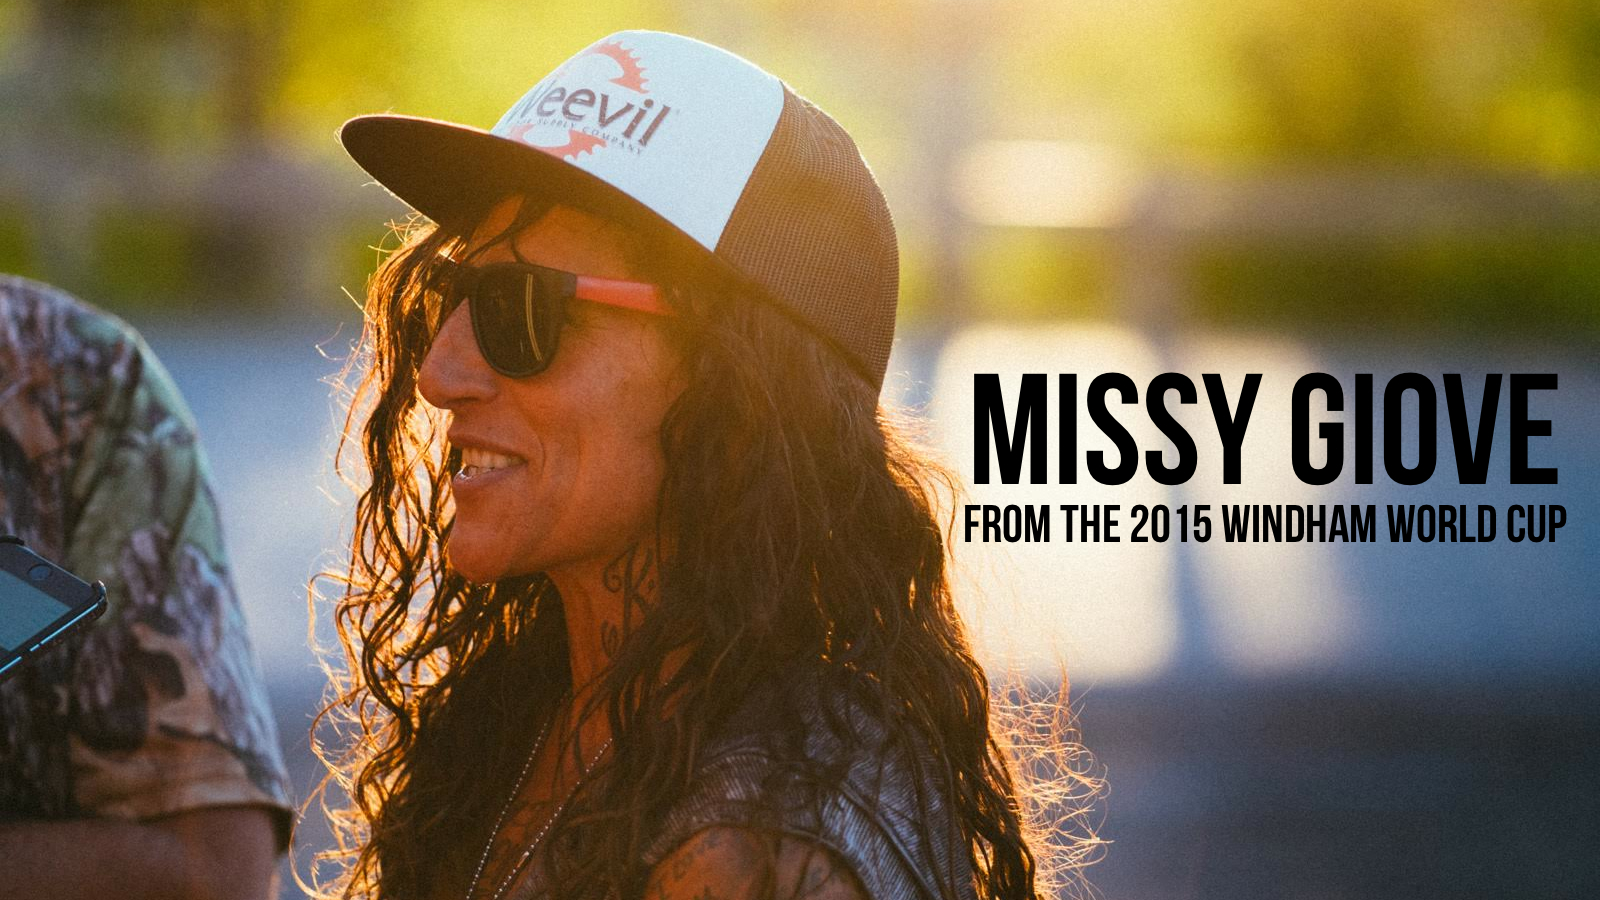 Drag Racing Helmets >> Missy Giove at the 2015 Windham World Cup - Mountain Biking Pictures - Vital MTB